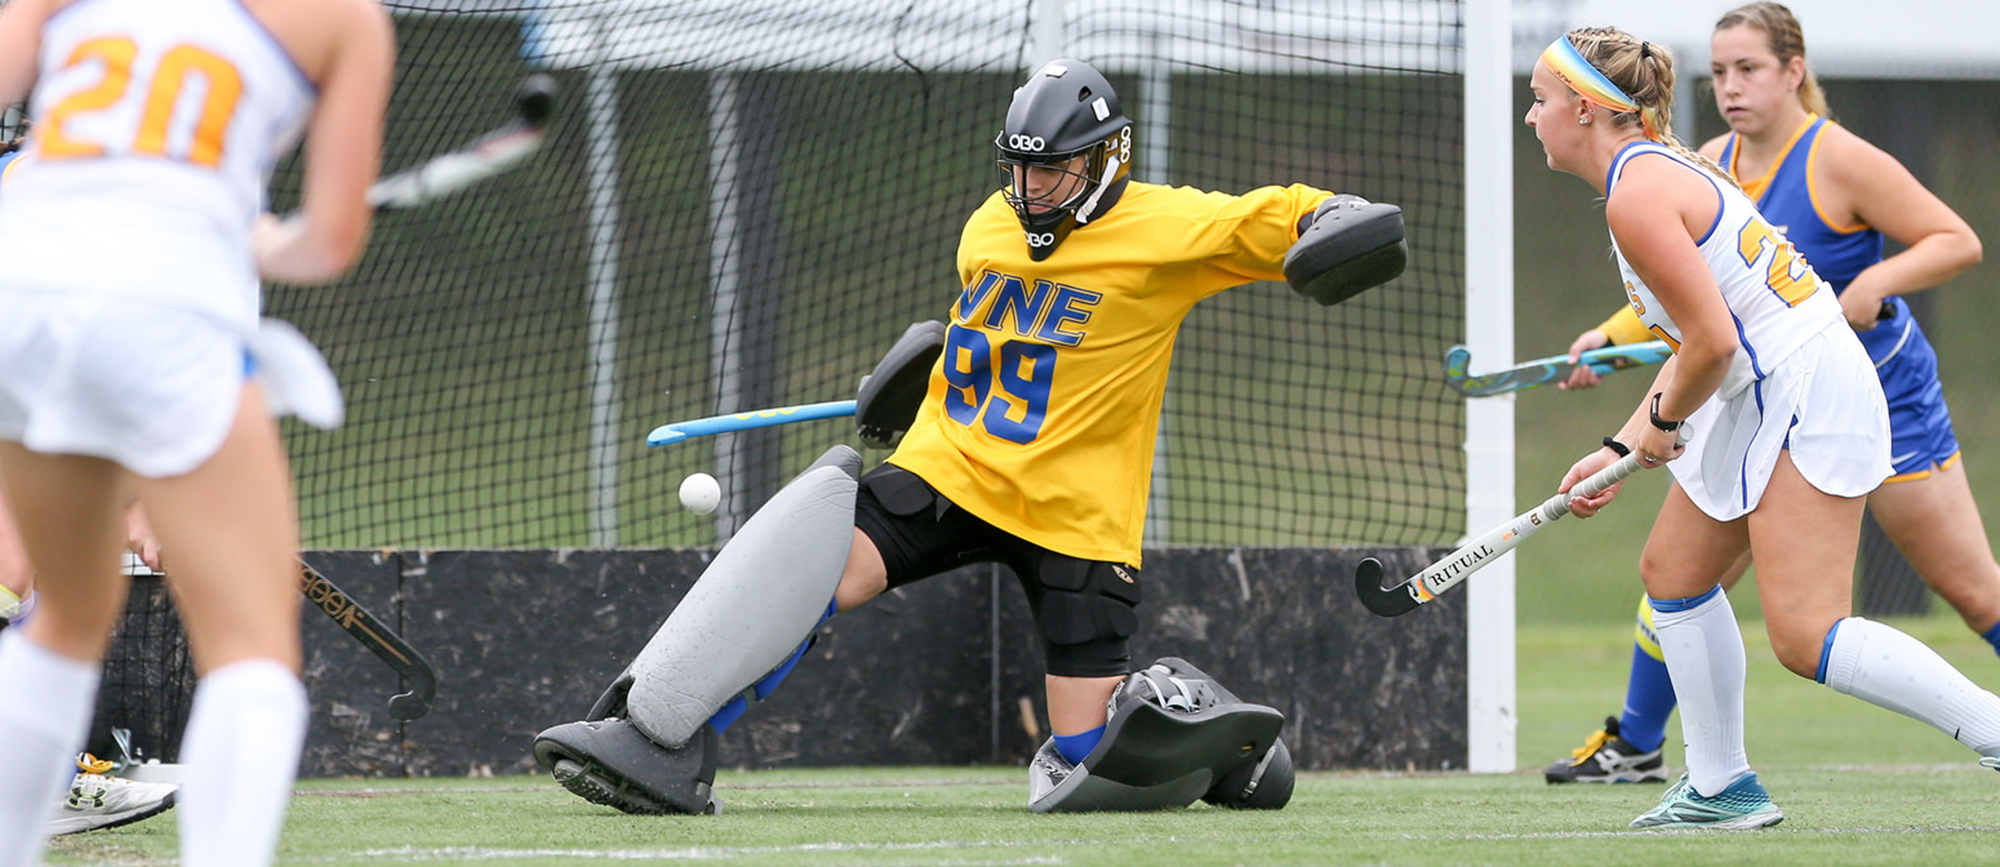 Senior goalkeeper Dana Dufour made a career-high 29 saves in Western New England's 5-0 loss to Endicott on Saturday. (Photo by Chris Marion)